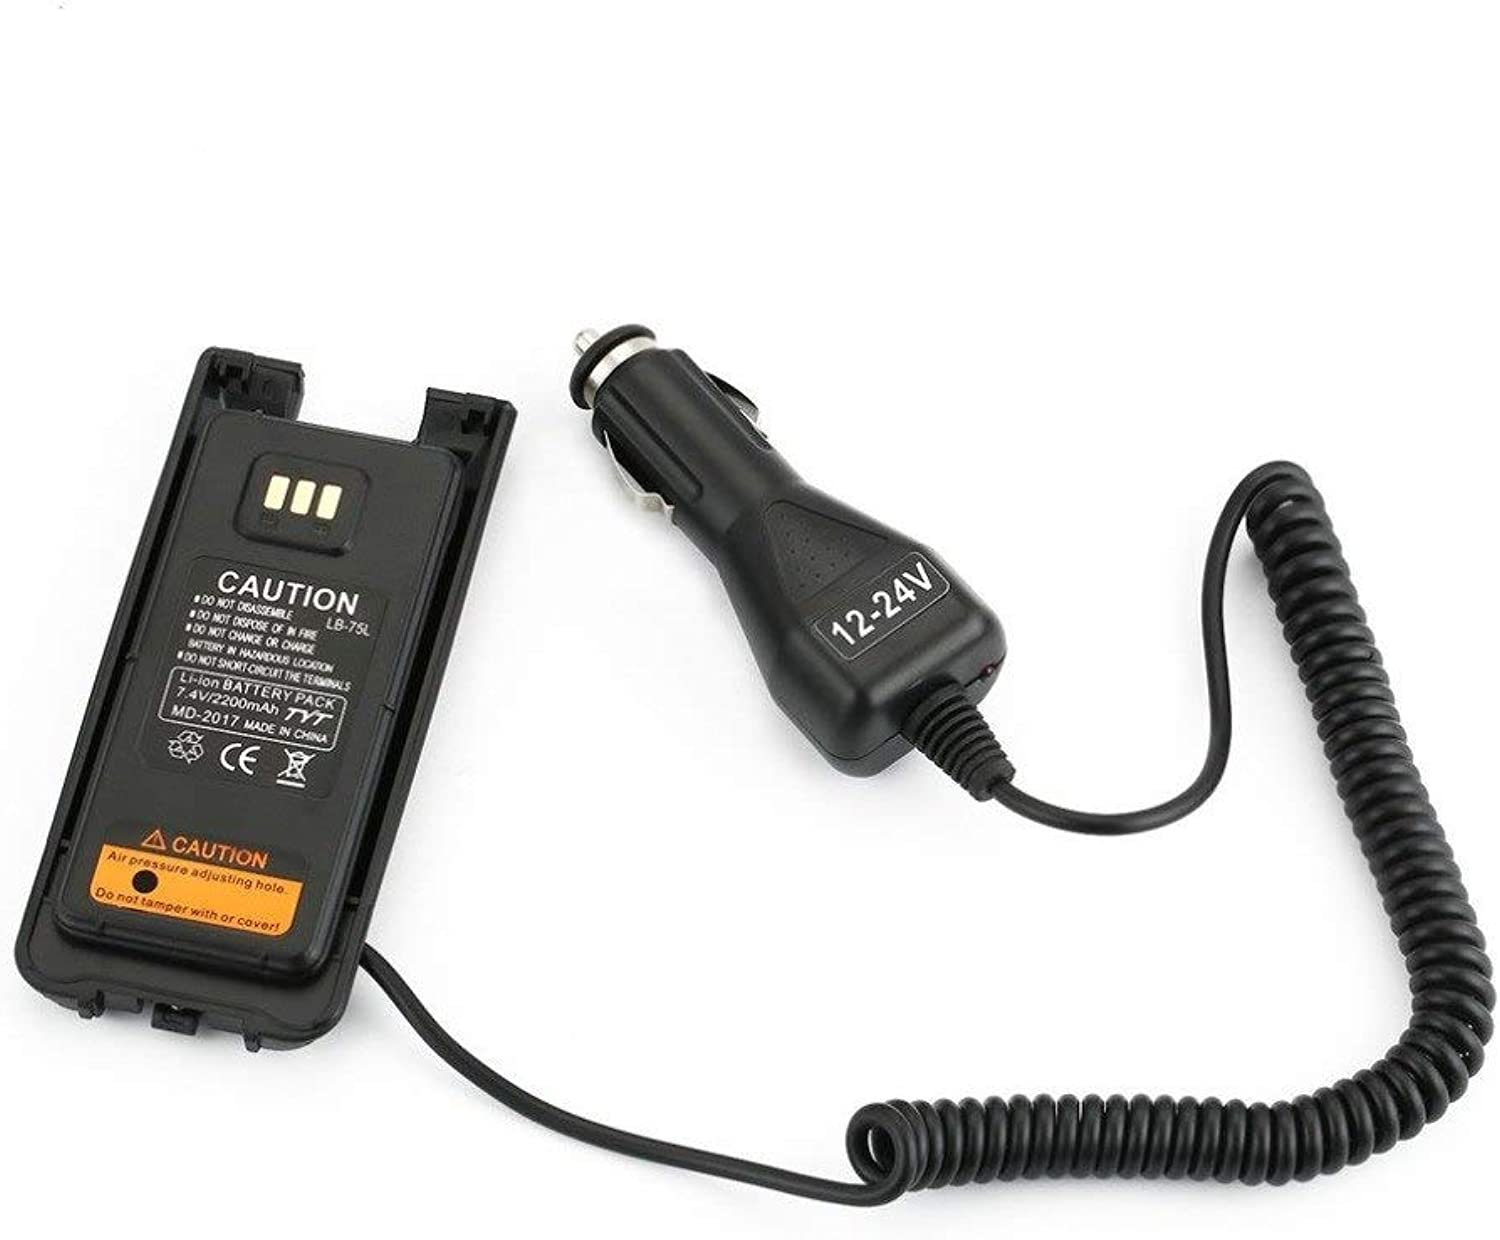 Compact Car Charger Radio Battery Eliminator for Caricabatteria Walkie Talkie Per TYT DMR Radio Digitale with DC 12V 24V